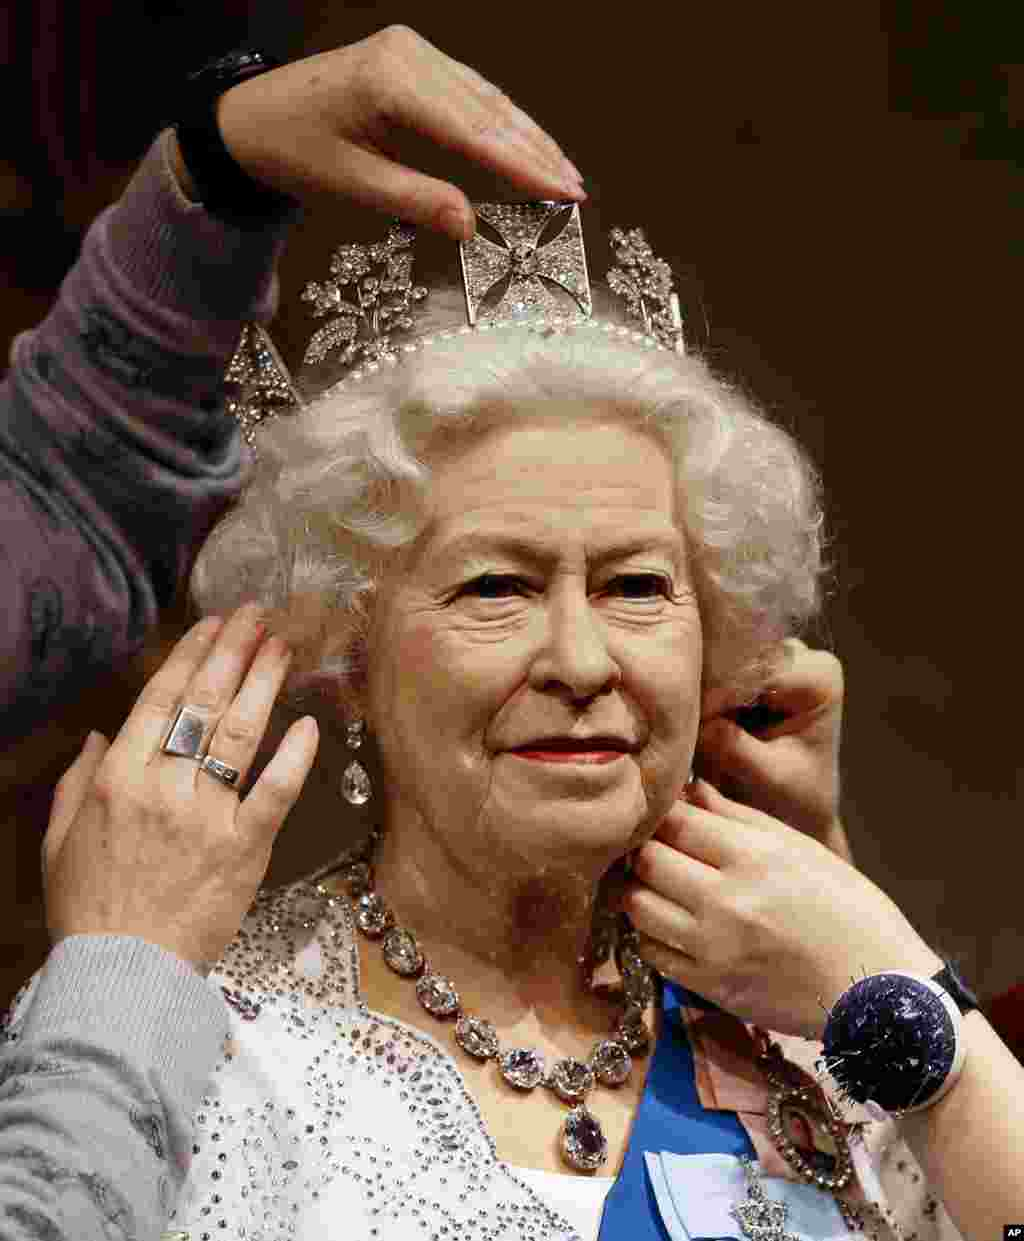 A wax work model of Britain's Queen Elizabeth II is prepared at Madame Tussauds in London.